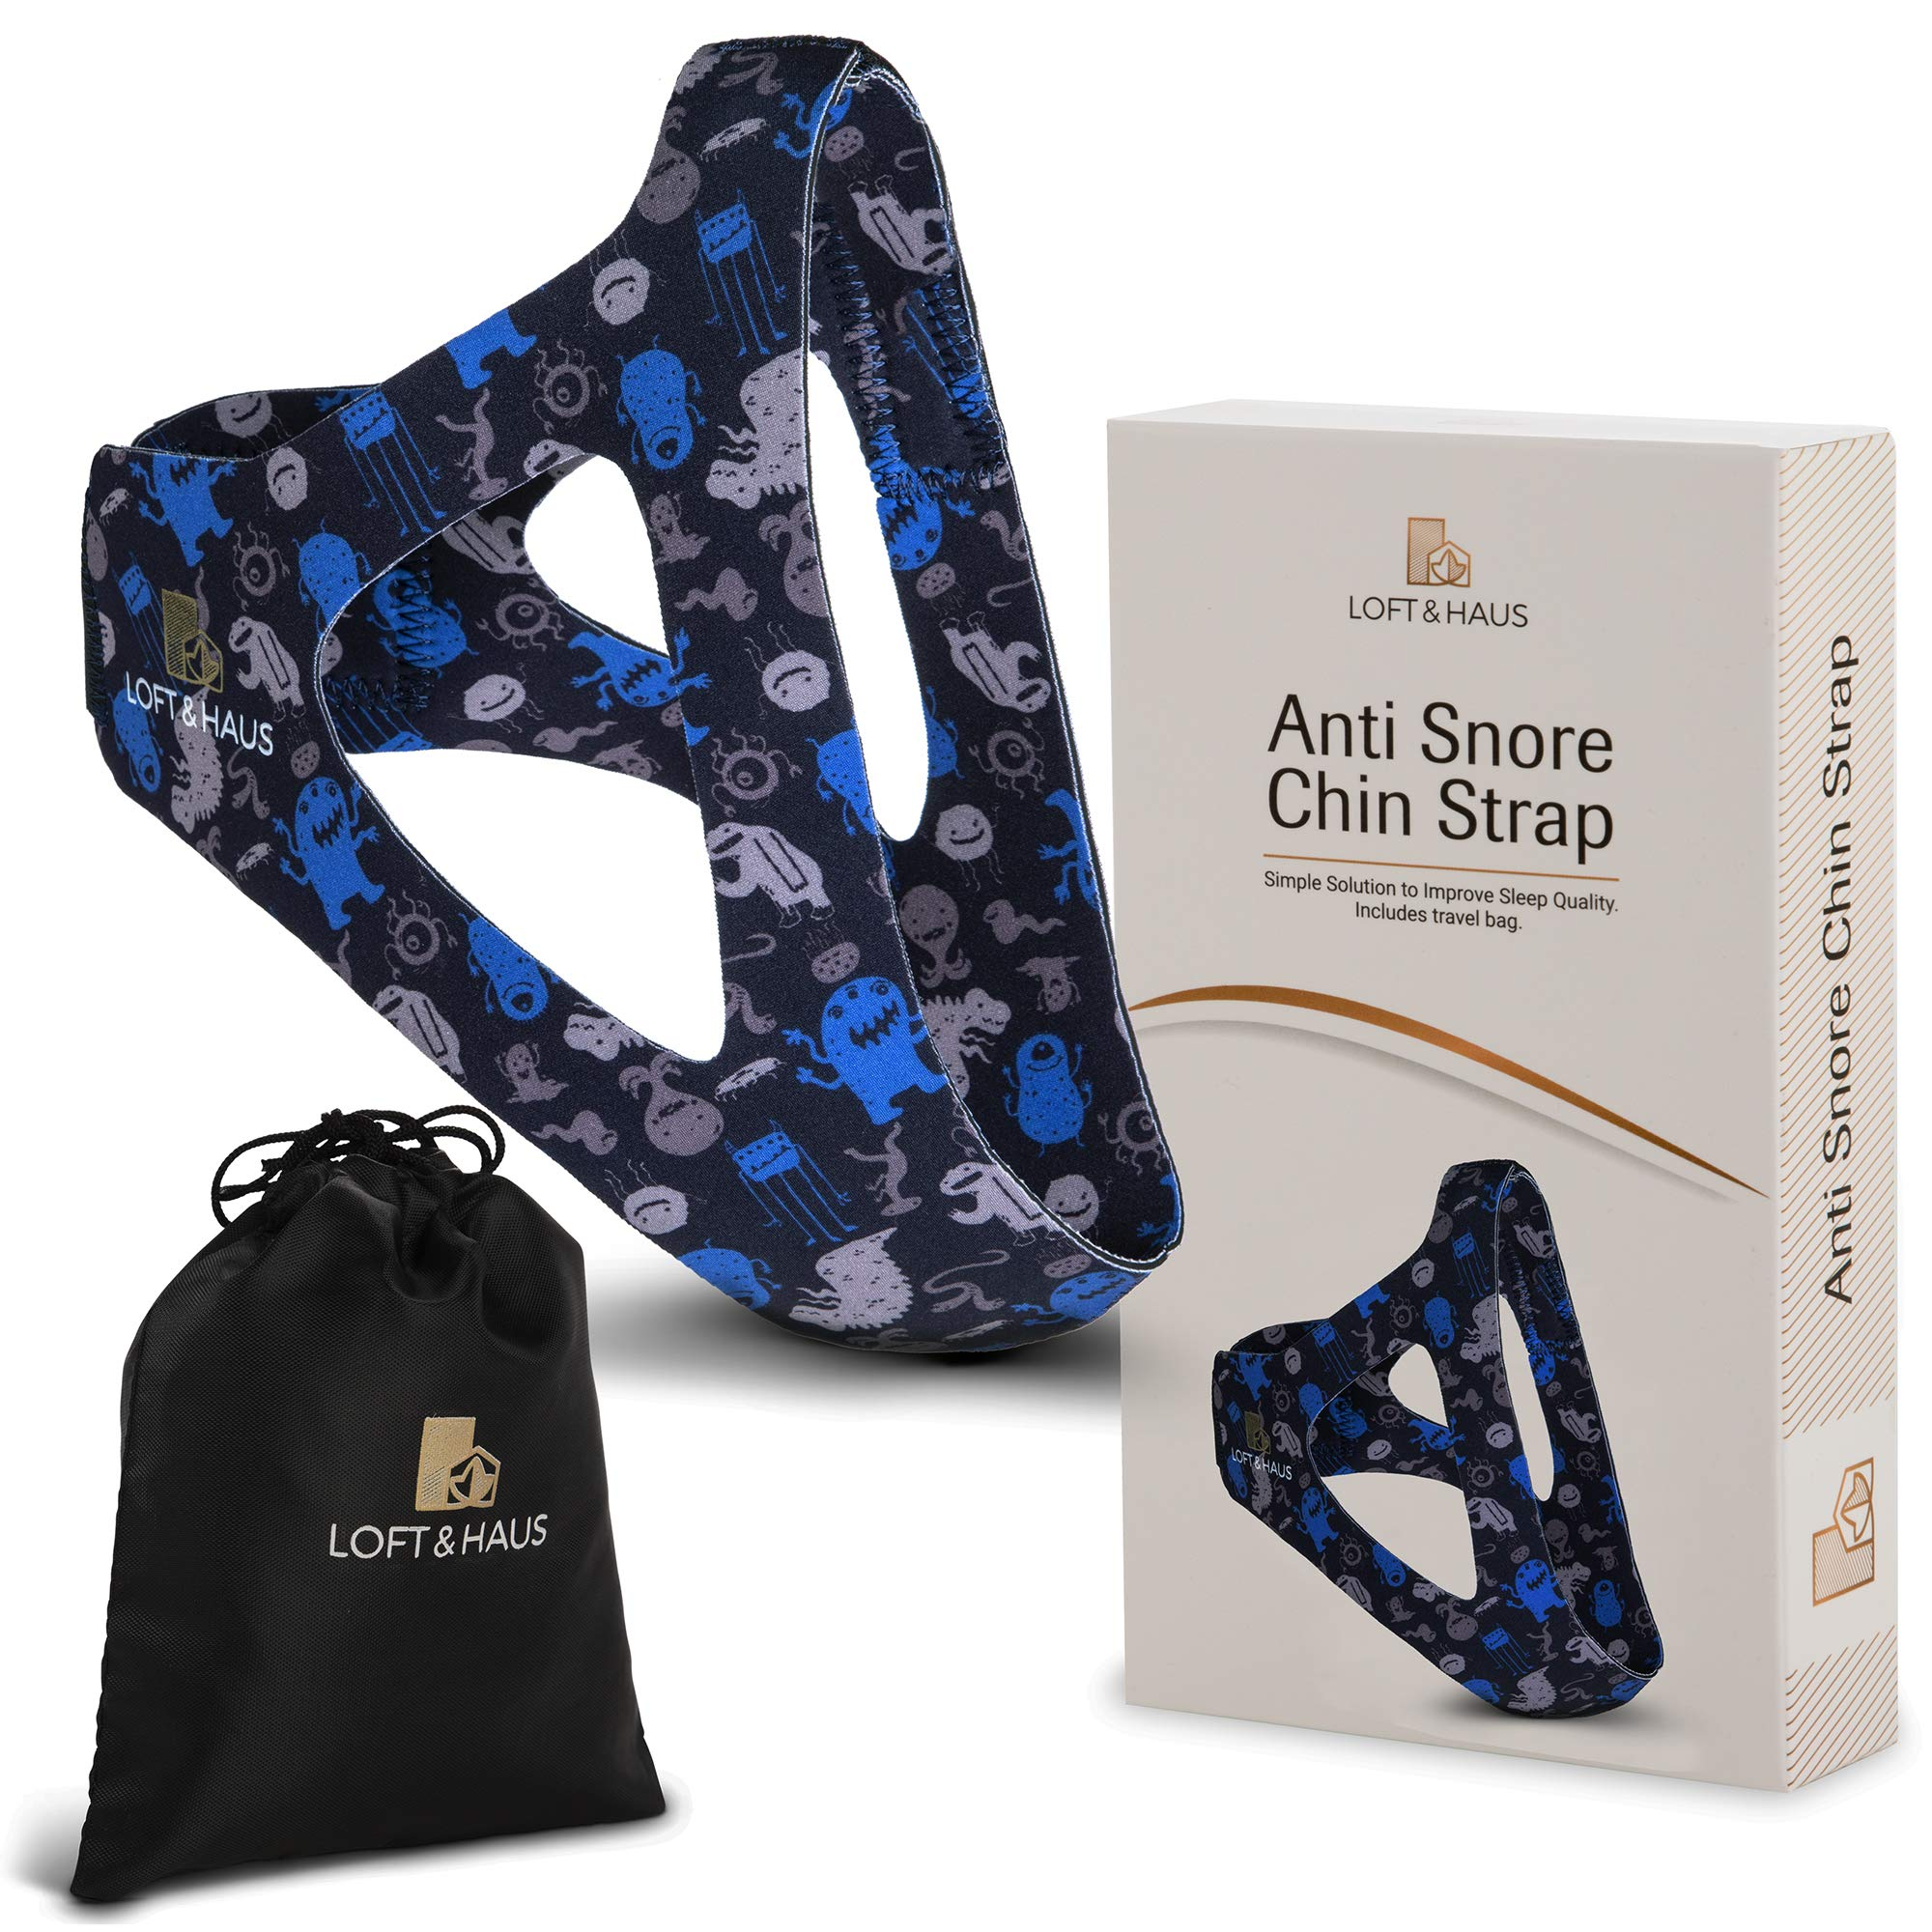 Anti Snoring Chin Strap Device for Men and Women - Snoring Solution Natural Sleep Aid Straps - Snore Stopper CPAP Chin Strap for Snoring, Dry Mouth - Snore Relief Jaw Band CPAP Chin Strap (Blue Alien)